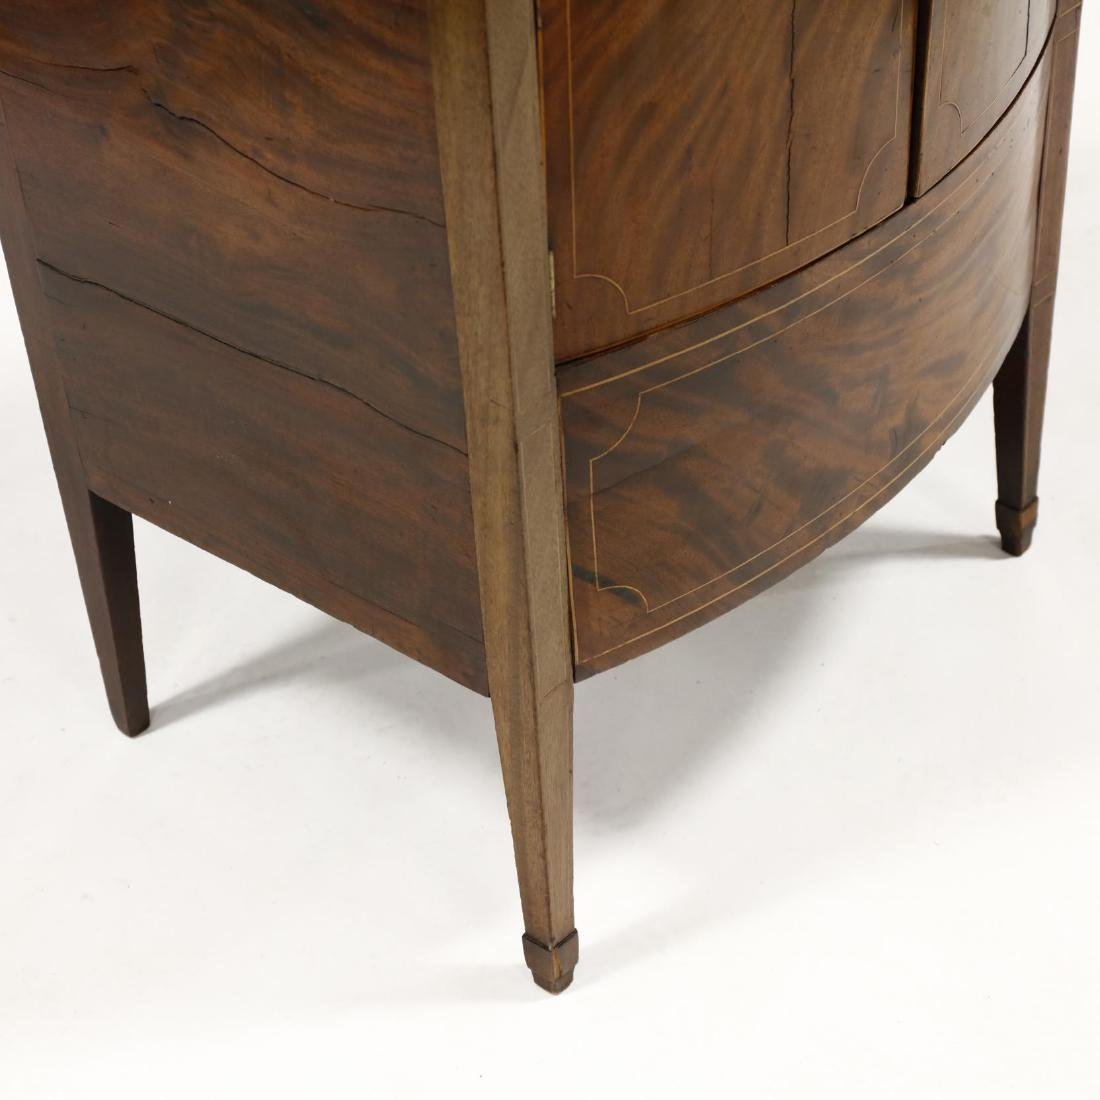 George III Inlaid Mahogany Bow Front Side Cabinet - 4